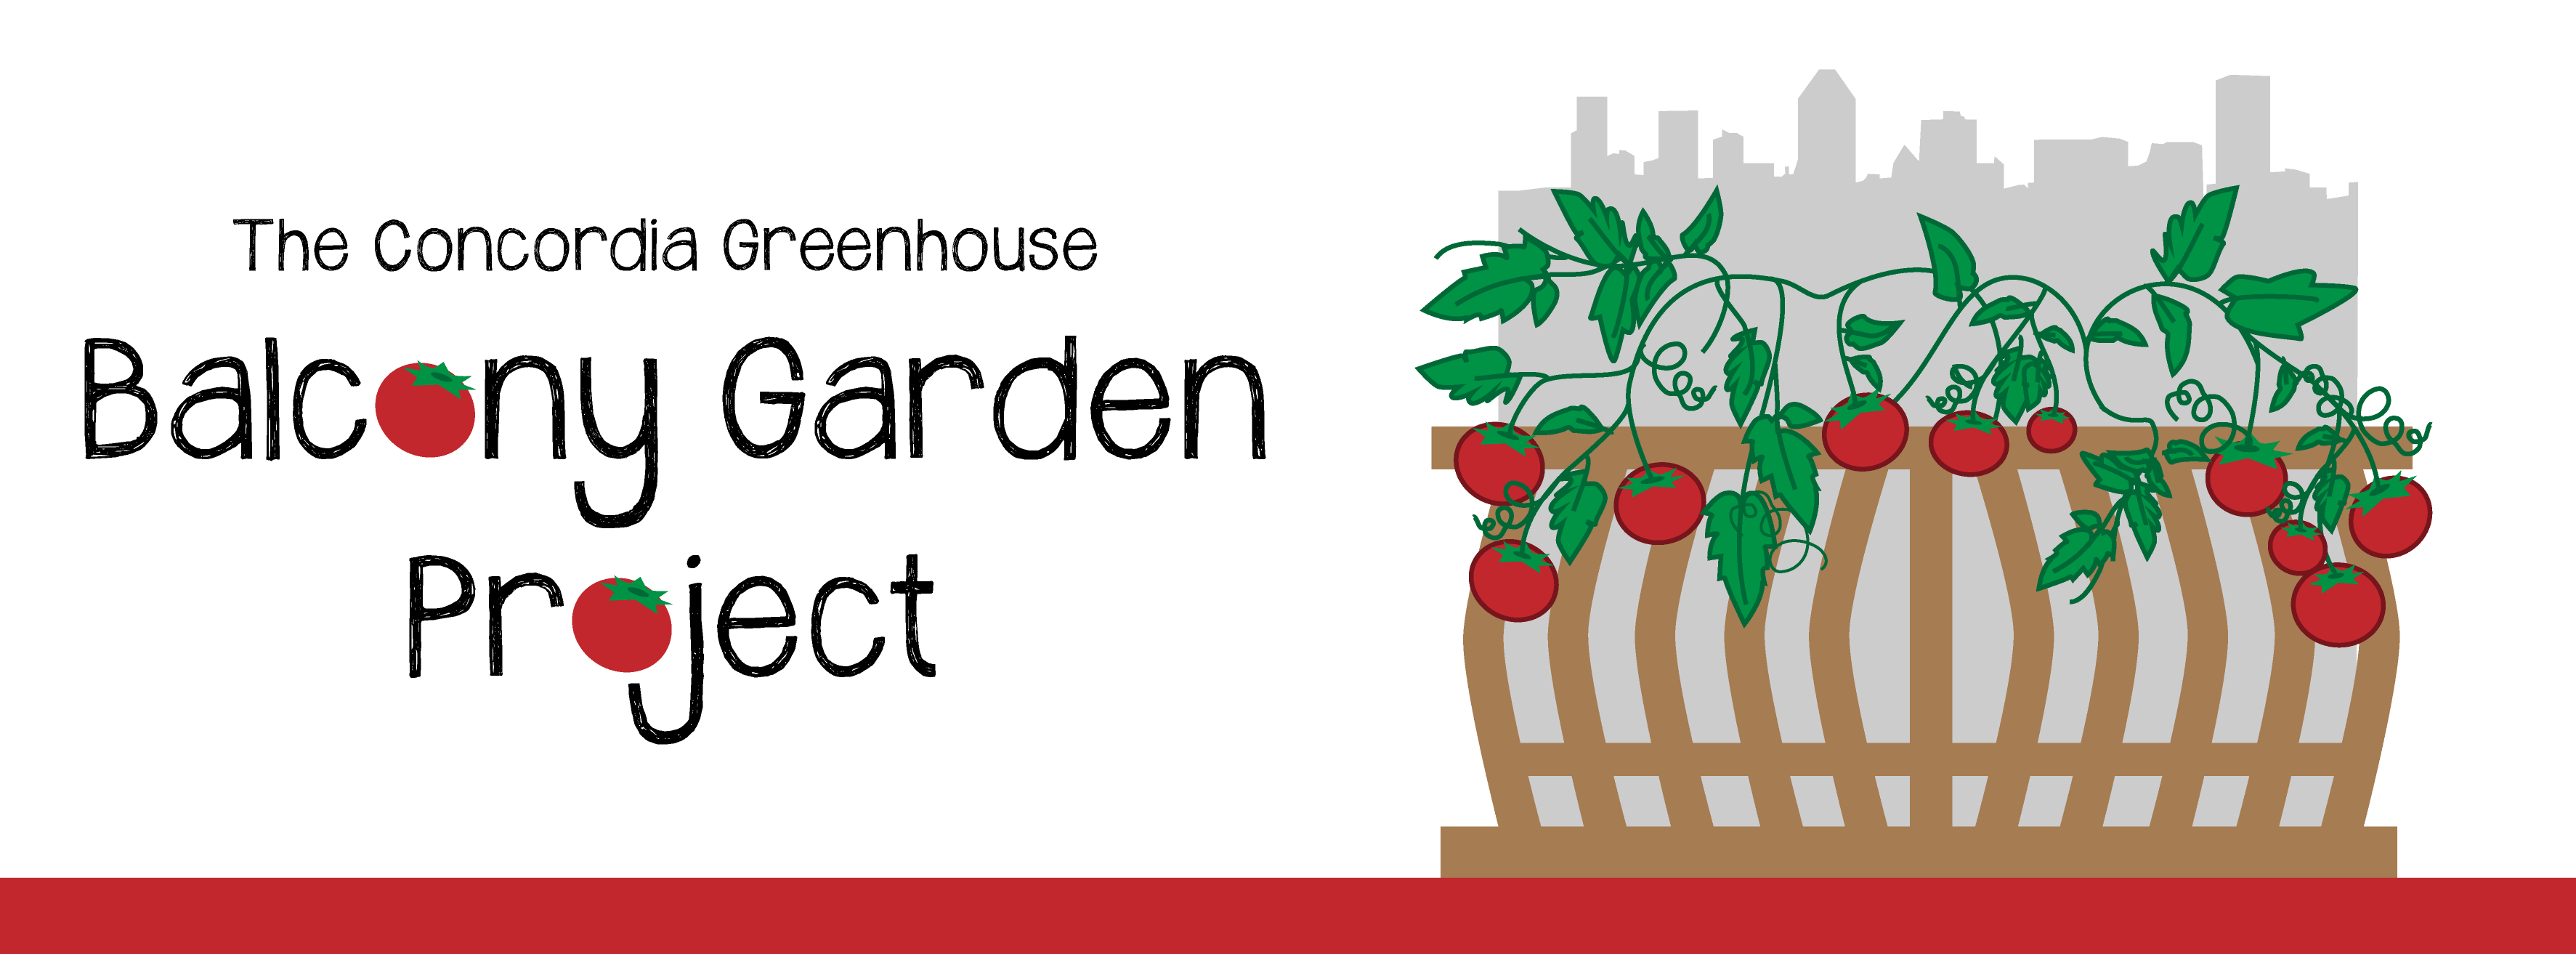 Self Watering Systems The Concordia Greenhouse